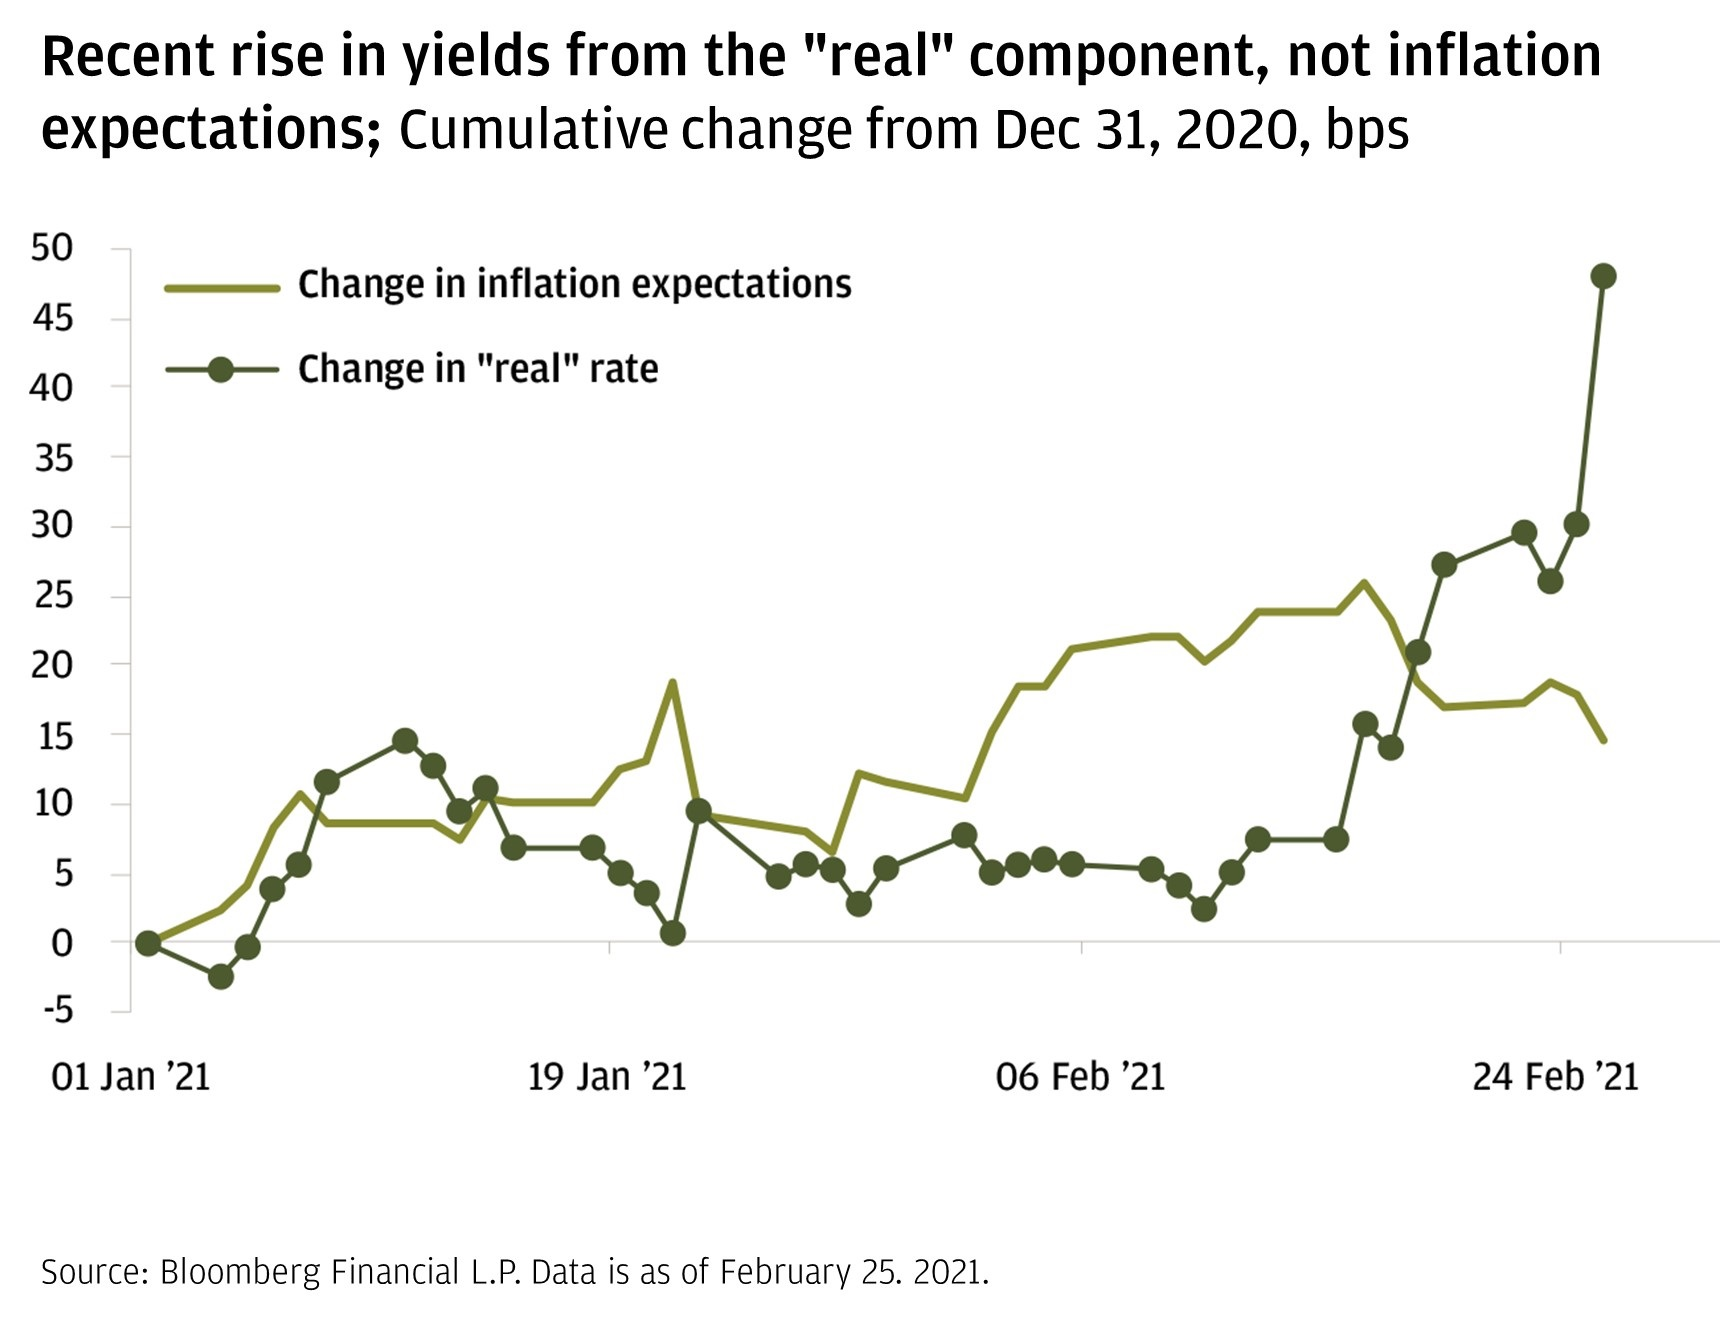 Chart 1: This chart shows the change in inflation expectations and the real rate from January 1, 2021, to February 25, 2021, in basis points (bps).